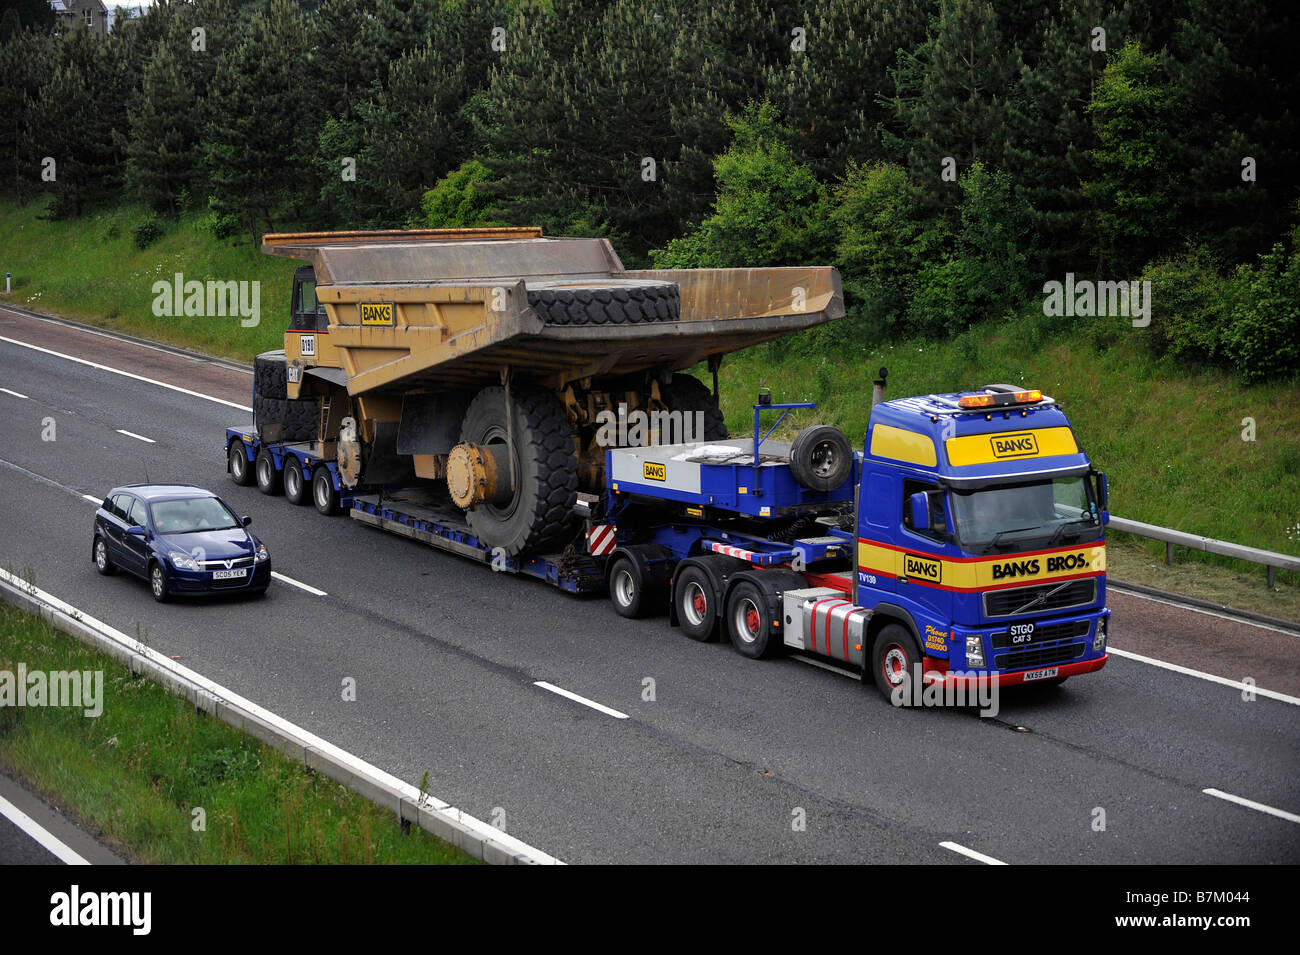 Banks Volvo FH heavy haulage truck carrying a giant dump truck wide abnormal load on the motorway - Stock Image